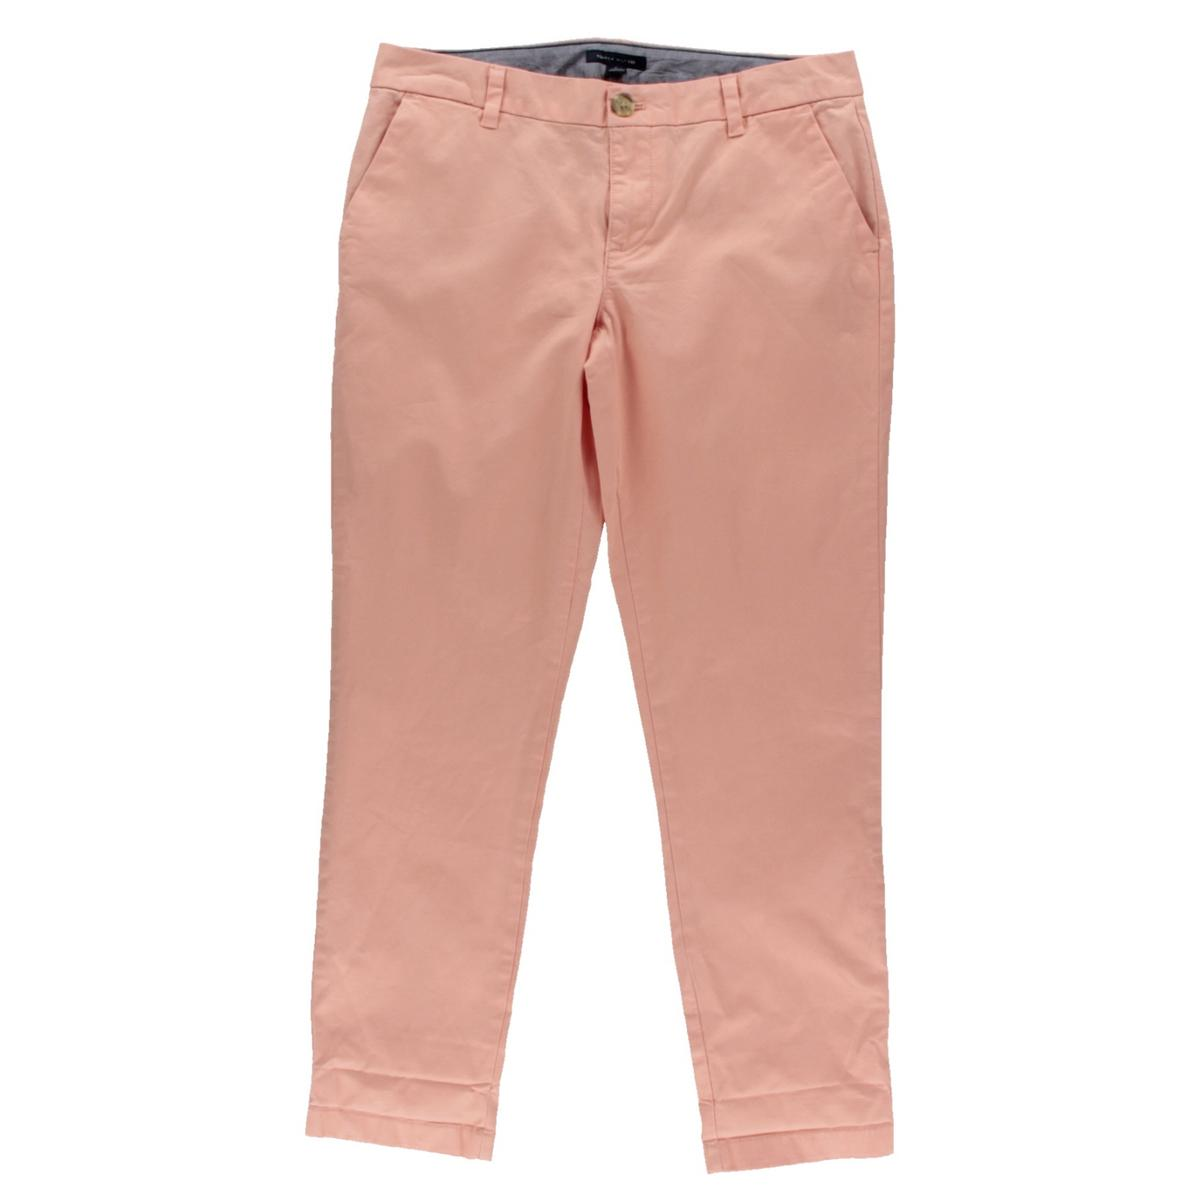 Innovative Tommy Hilfiger Pants Chinos Womens Straight Khaki Flat Front 0 2 4 6 8